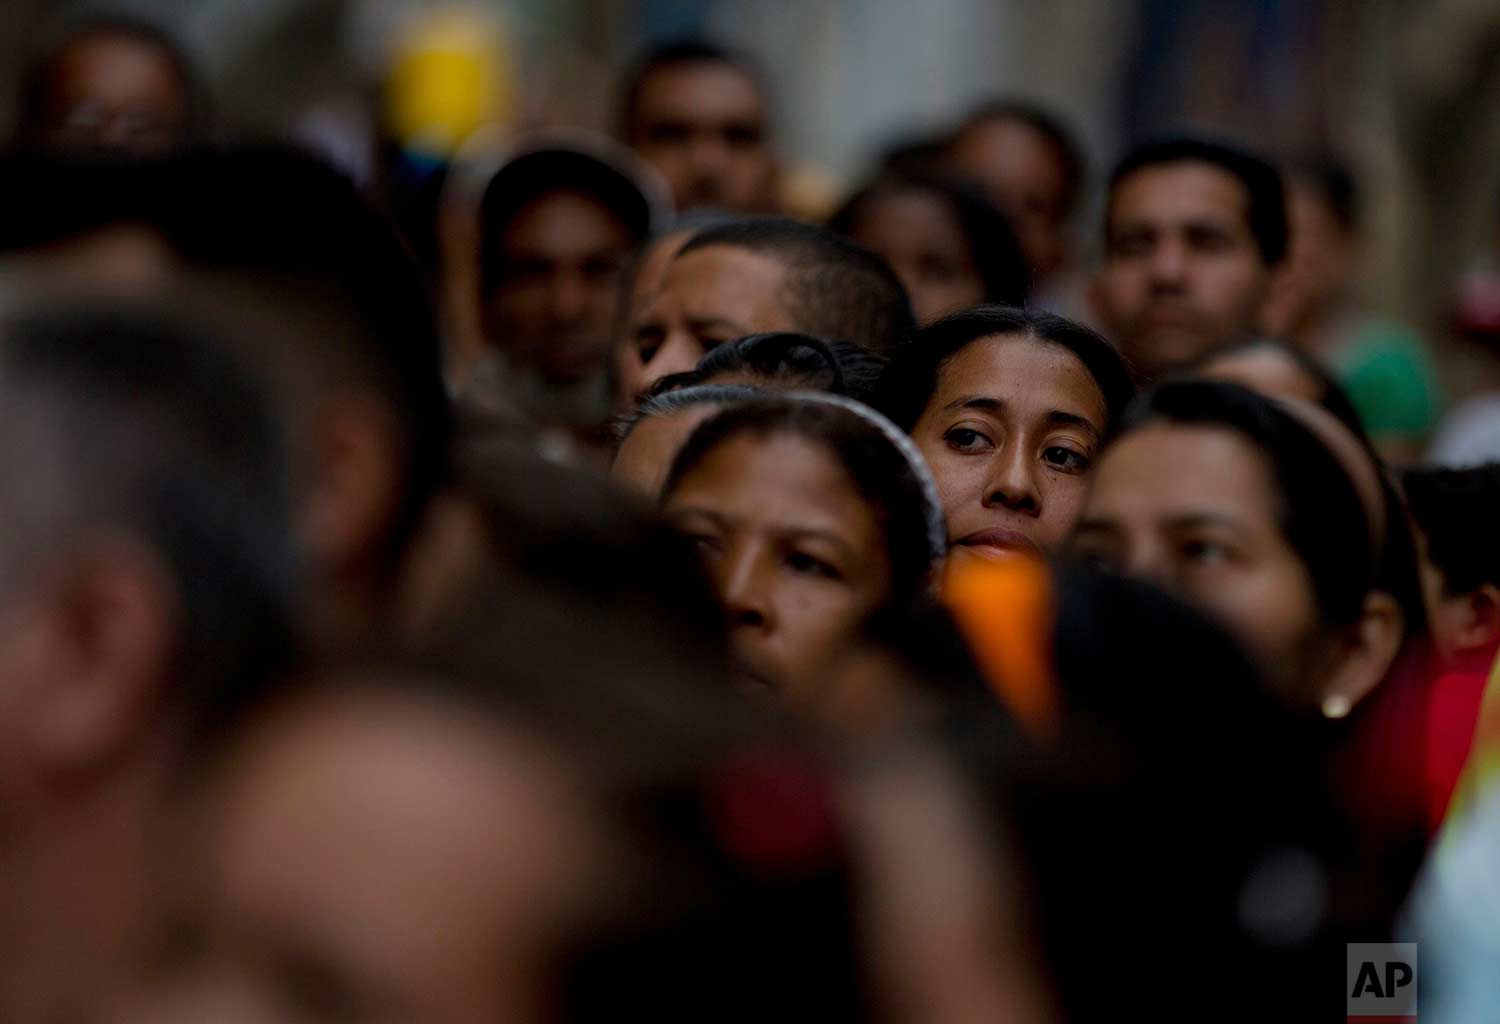 Voters wait in line to cast their ballots outside a polling station during regional elections in Caracas, Venezuela, Sunday, Oct. 15, 2017. (AP Photo/Fernando Llano)